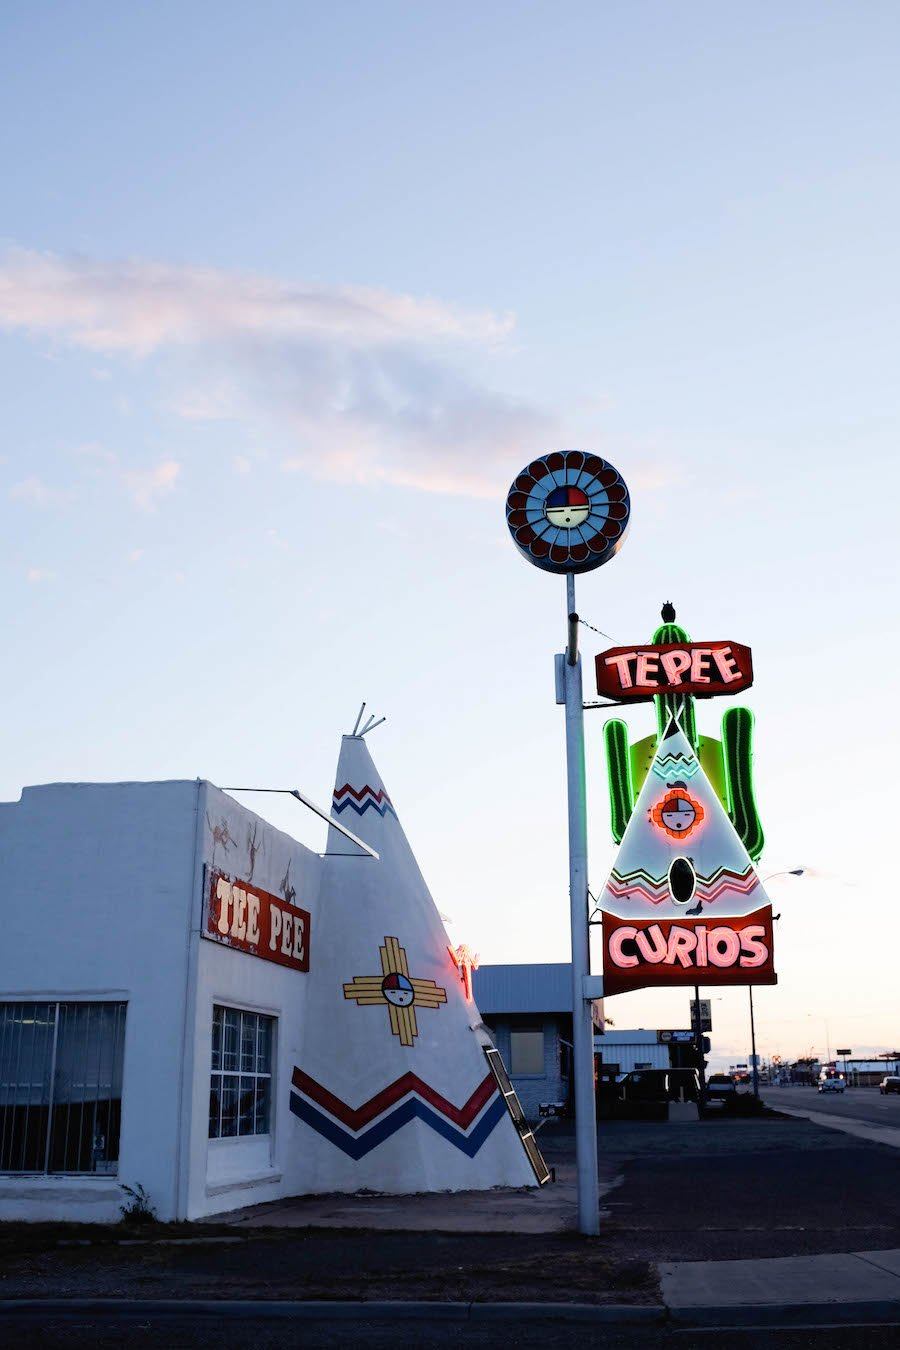 Route 66 Road Trip, Tepee Curios Neon, Tucumcari New Mexico // Salty Canary